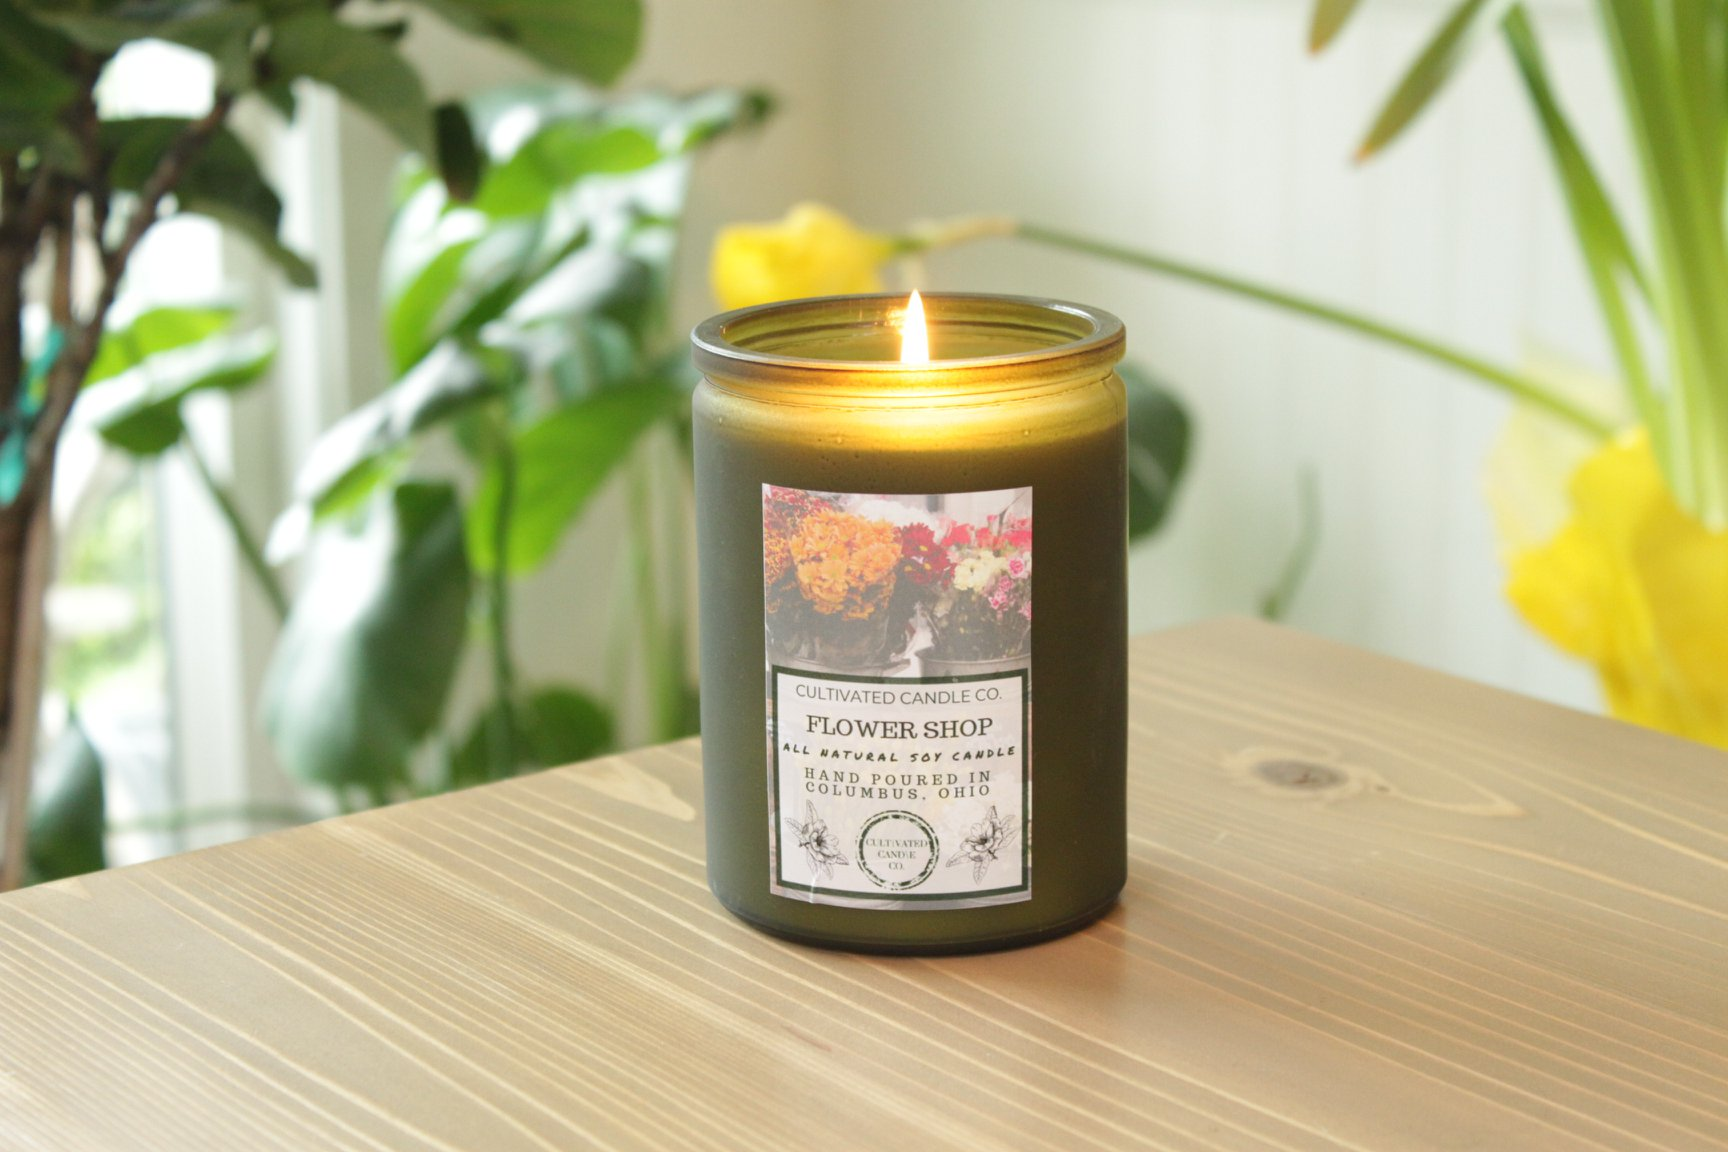 Cultivated Candle Co. Flower Shop Candle